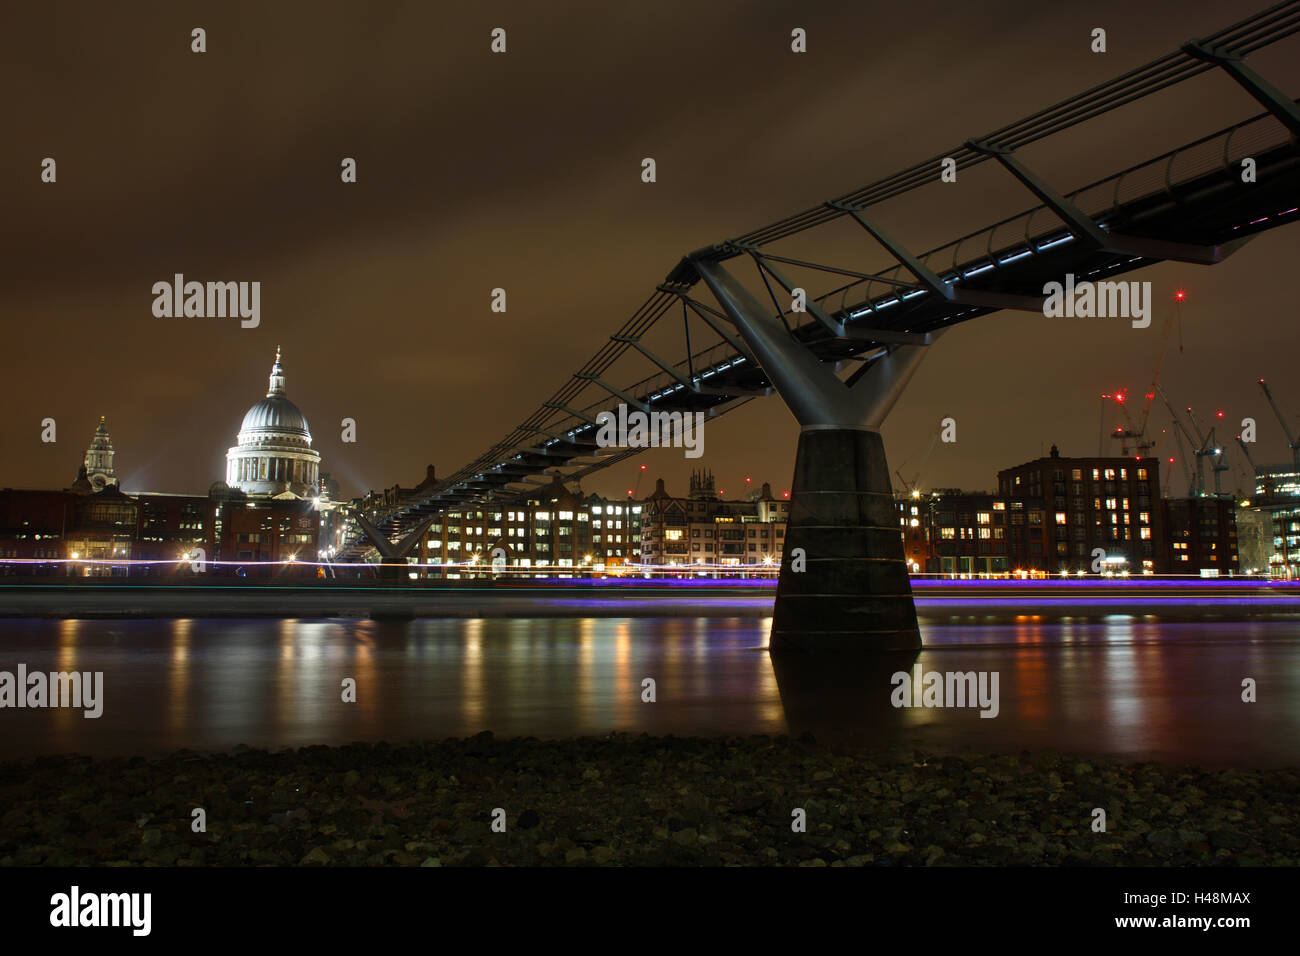 The Millennium footbridge spanning the Thames with St Paul's cathedral in the background - Stock Image